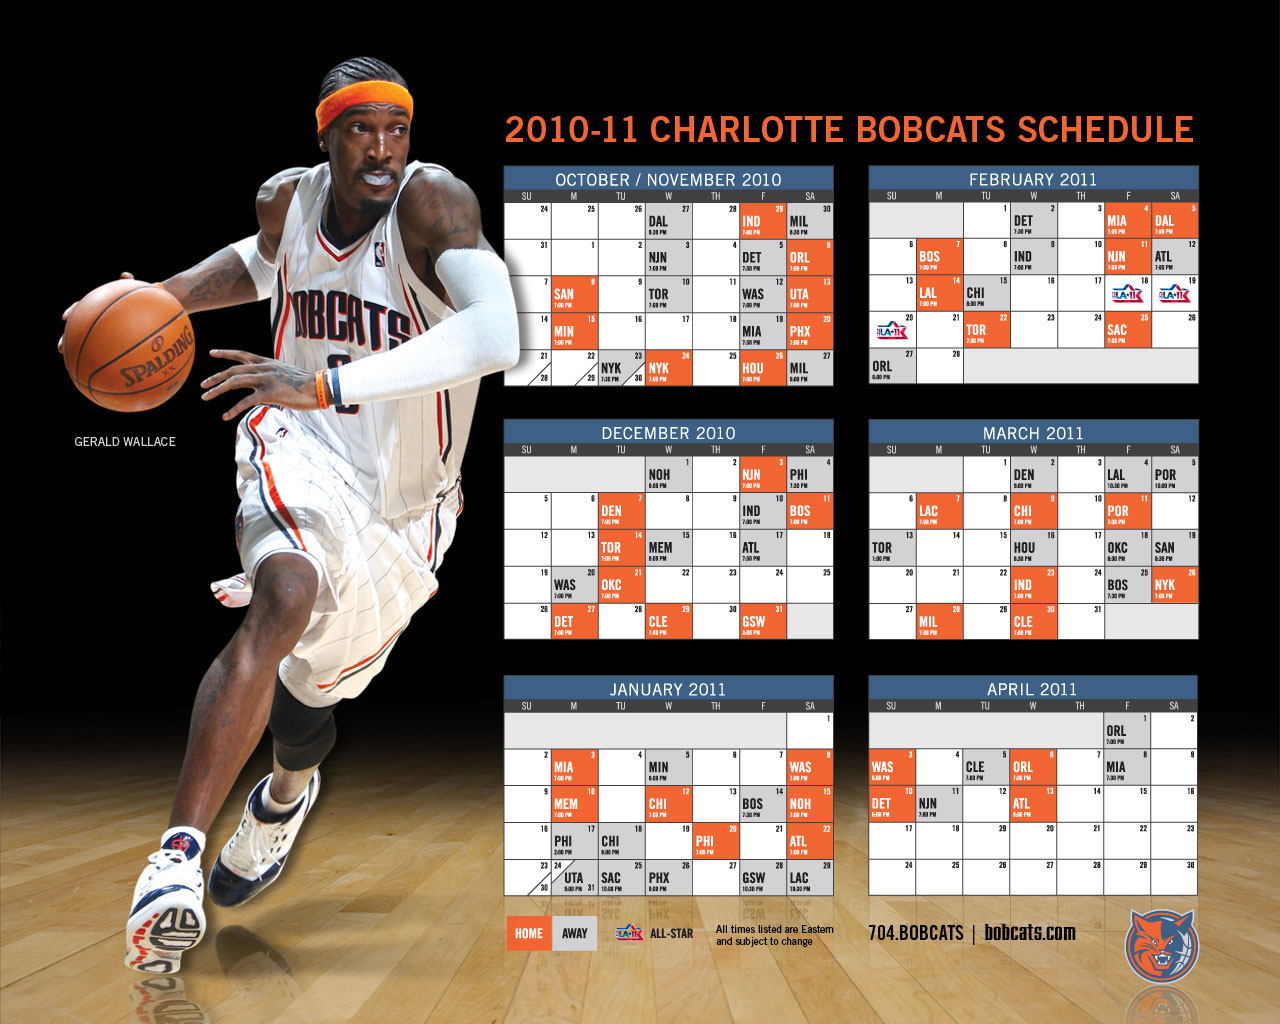 Charlotte Bobcats 2010-11 Schedule